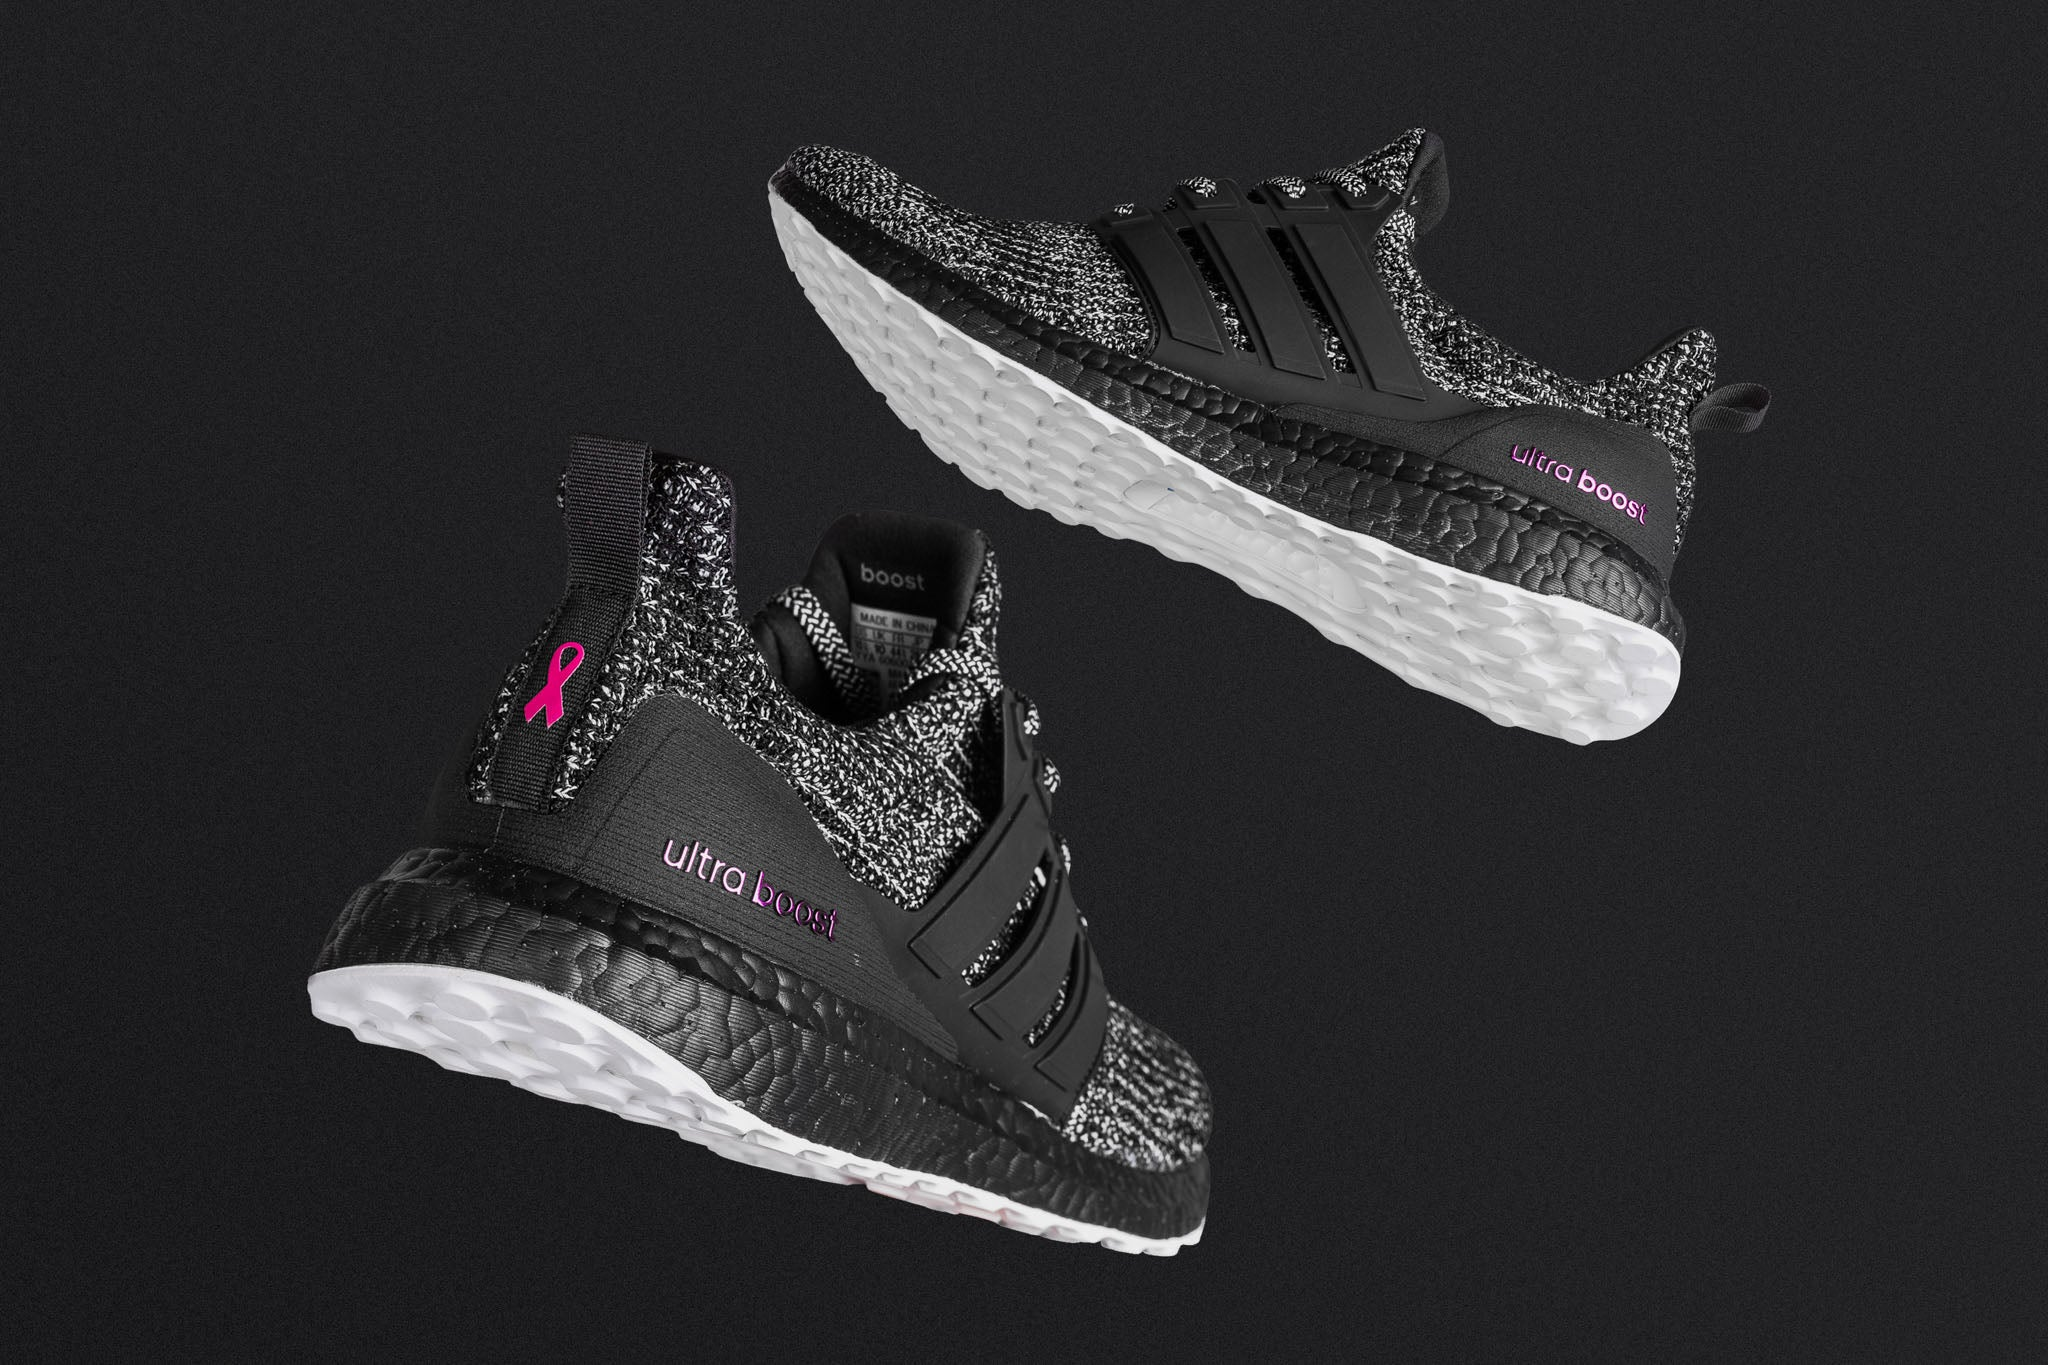 "brand new 428e7 06207 Adidas does it again with sneaker tributes for a noble cause using their  most beloved runner yet. The adidas Ultraboost ""Brest Cancer Awareness""  sports a ..."